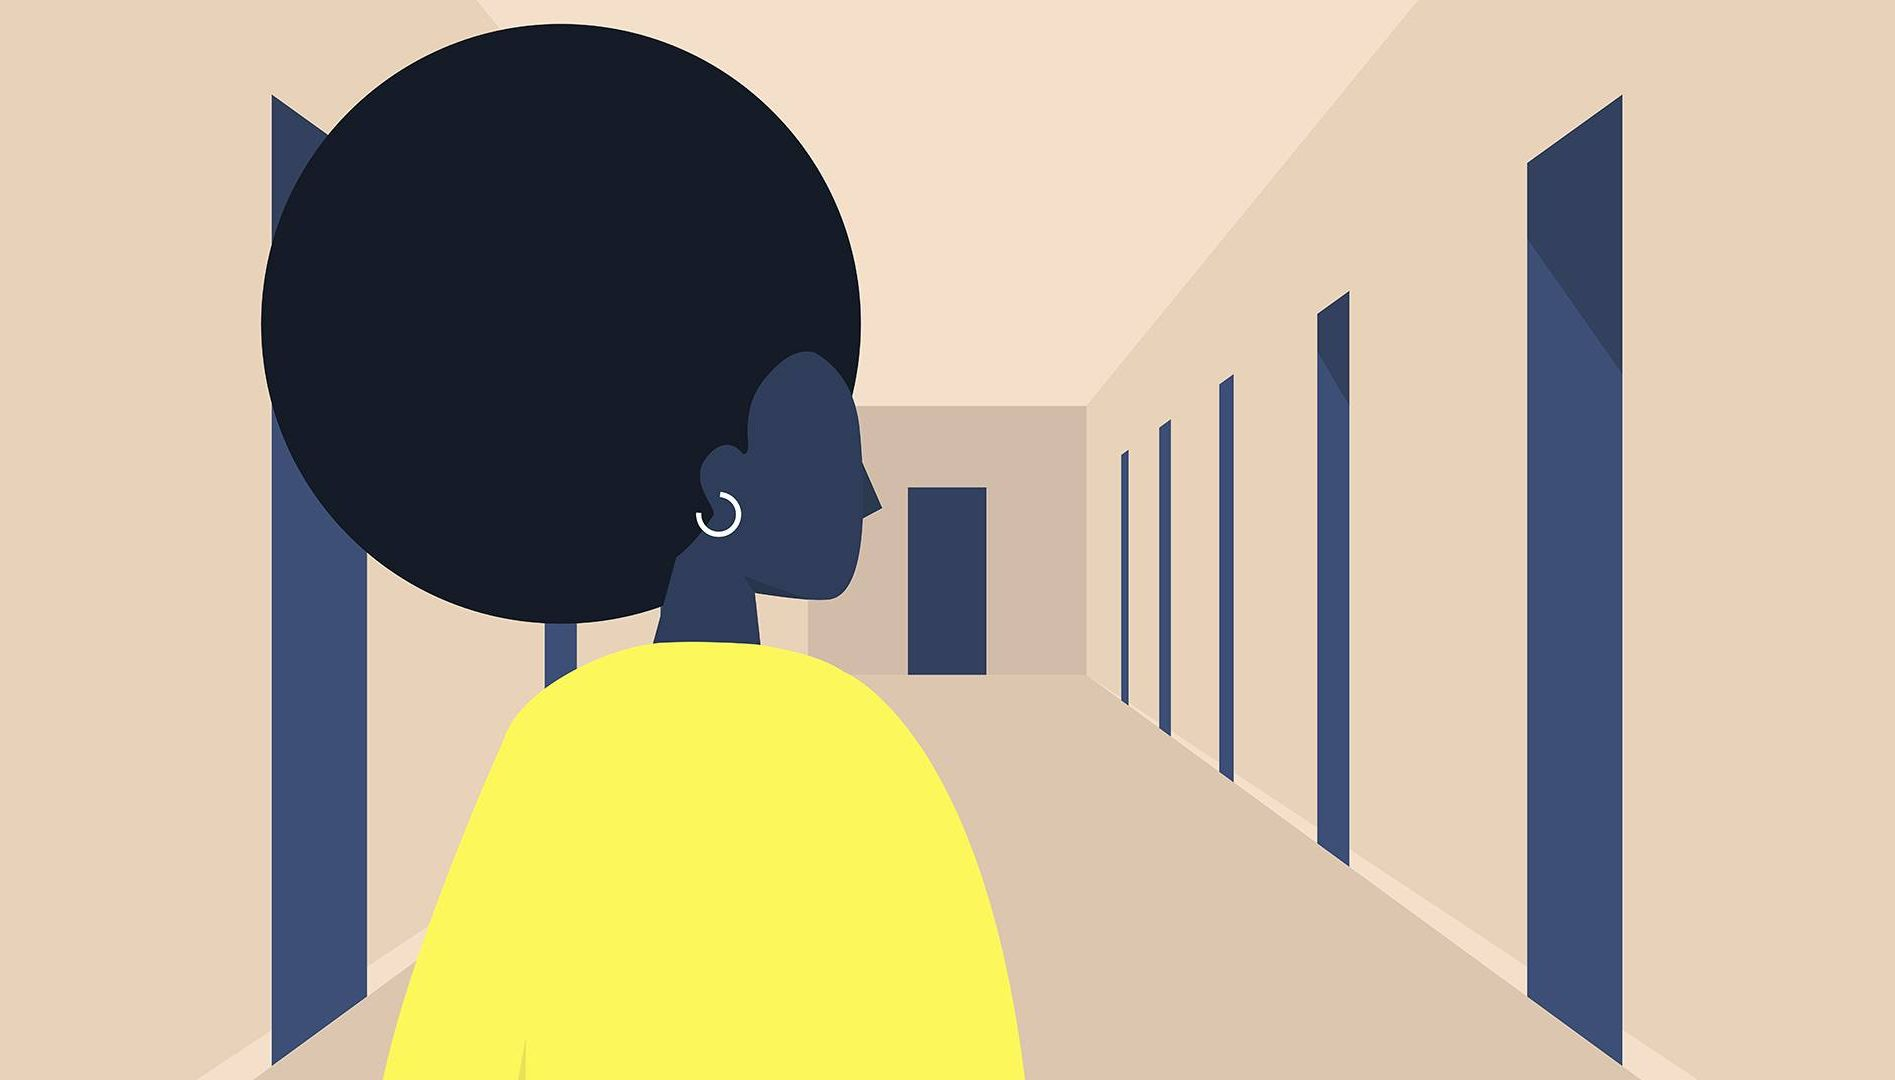 woman with choices at workplace. REWIRE PBS Work workplace values